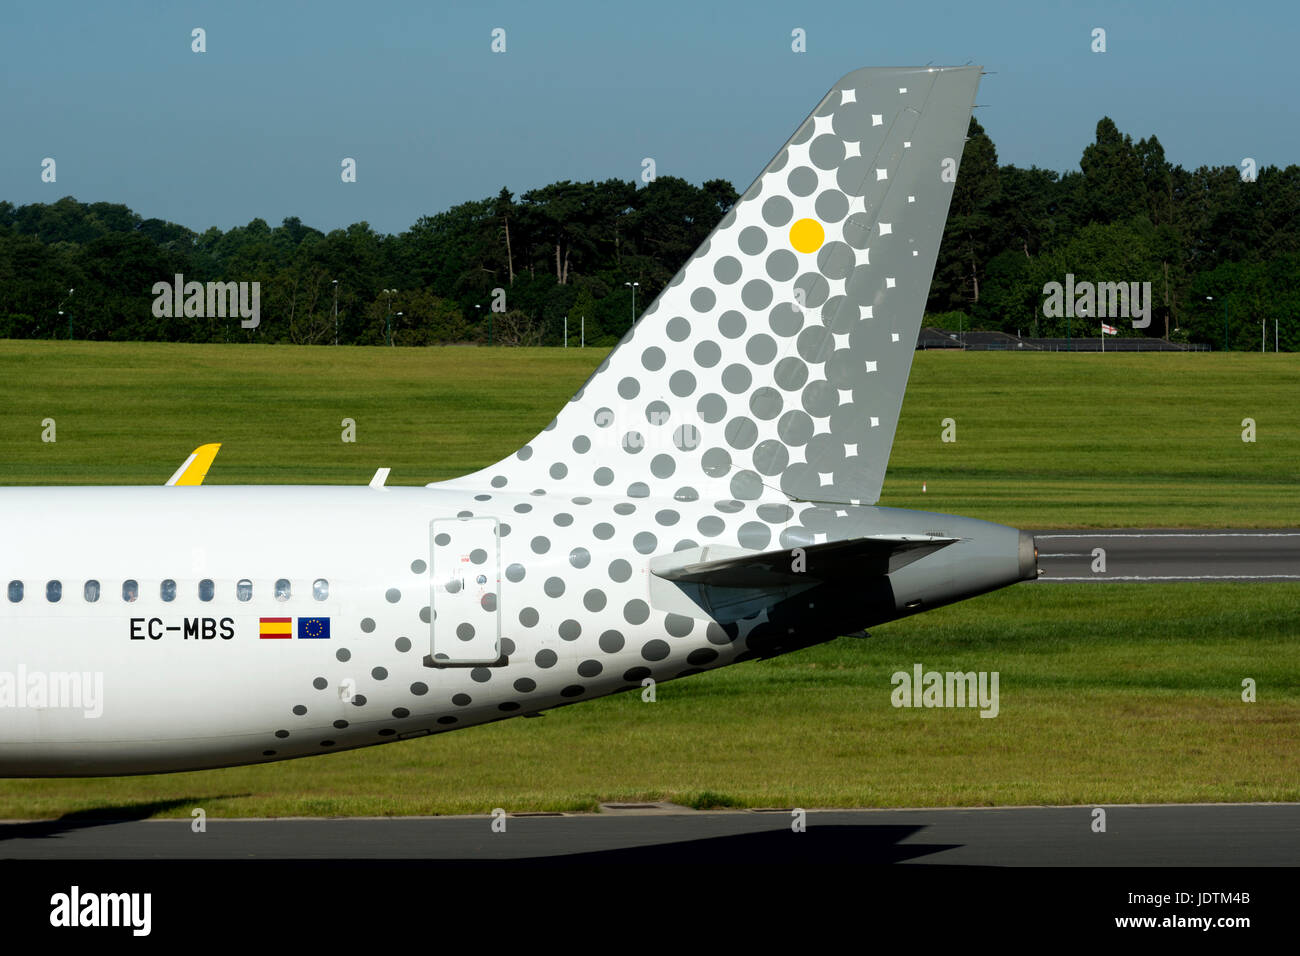 Vueling Airbus A320 taxiing at Birmingham Airport, UK (EC-MBS) - Stock Image